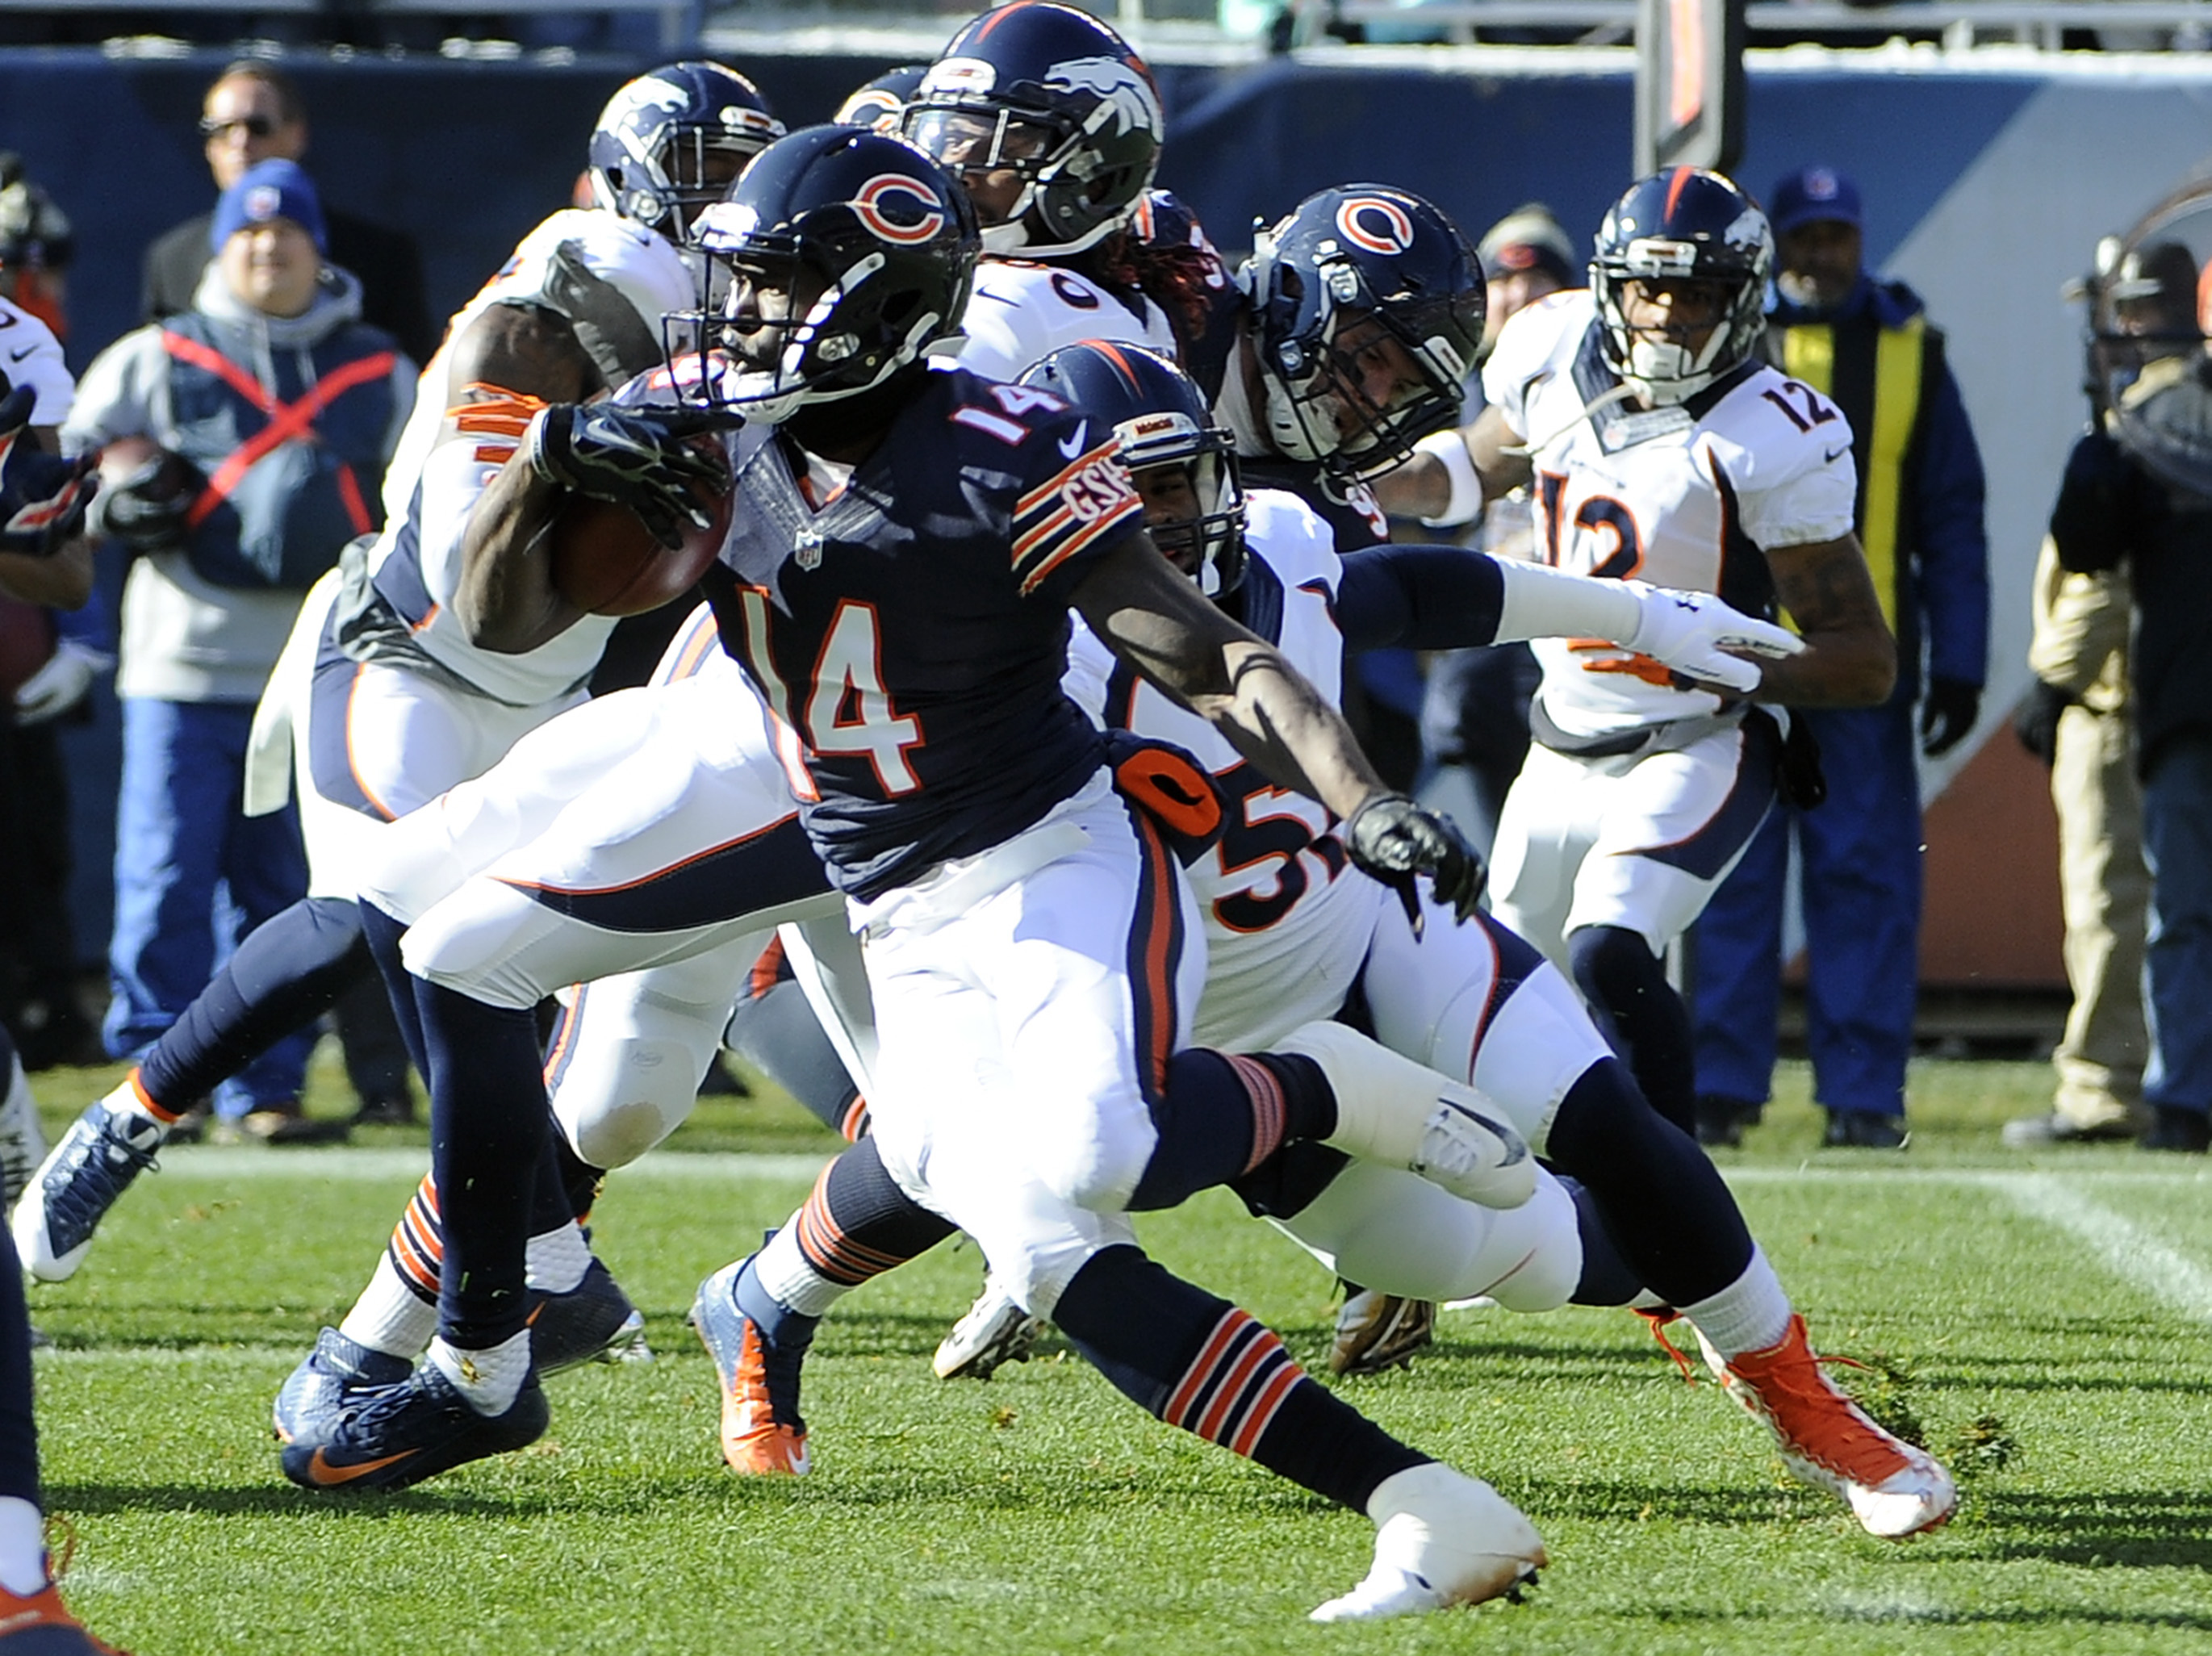 Deonte Thompson's return gives the Bears more team speed